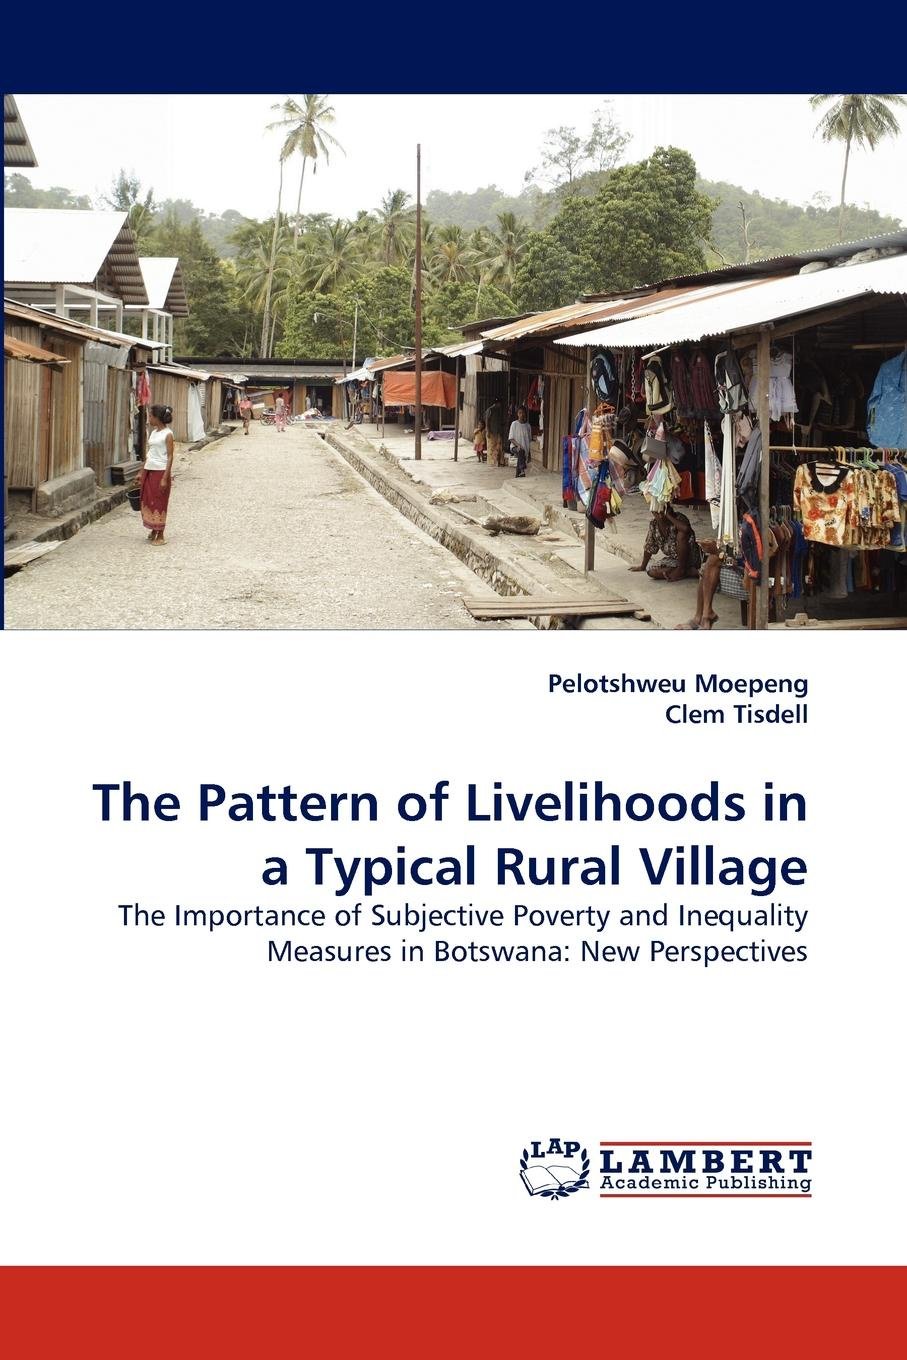 Фото - Pelotshweu Moepeng, Clem Tisdell The Pattern of Livelihoods in a Typical Rural Village agrarian distress and changing rural livelihoods in kerala